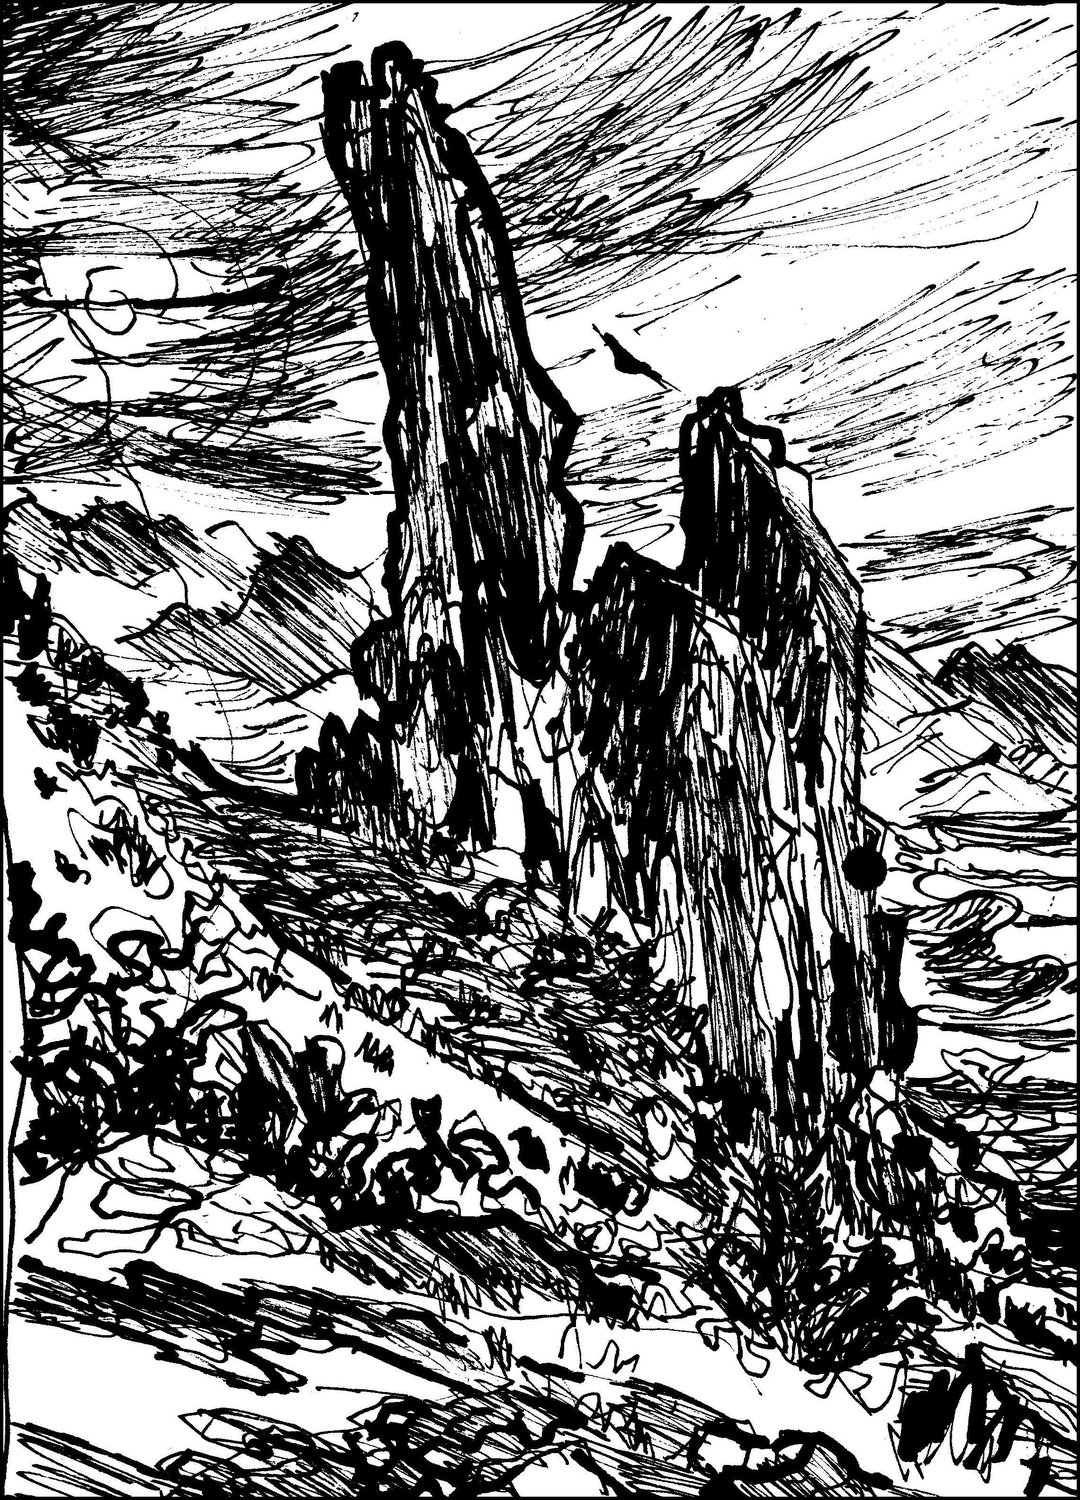 """Superstition Rock Formations,"" 9-by-12-inch. ink on paper, Superstition Mountains, 2015."